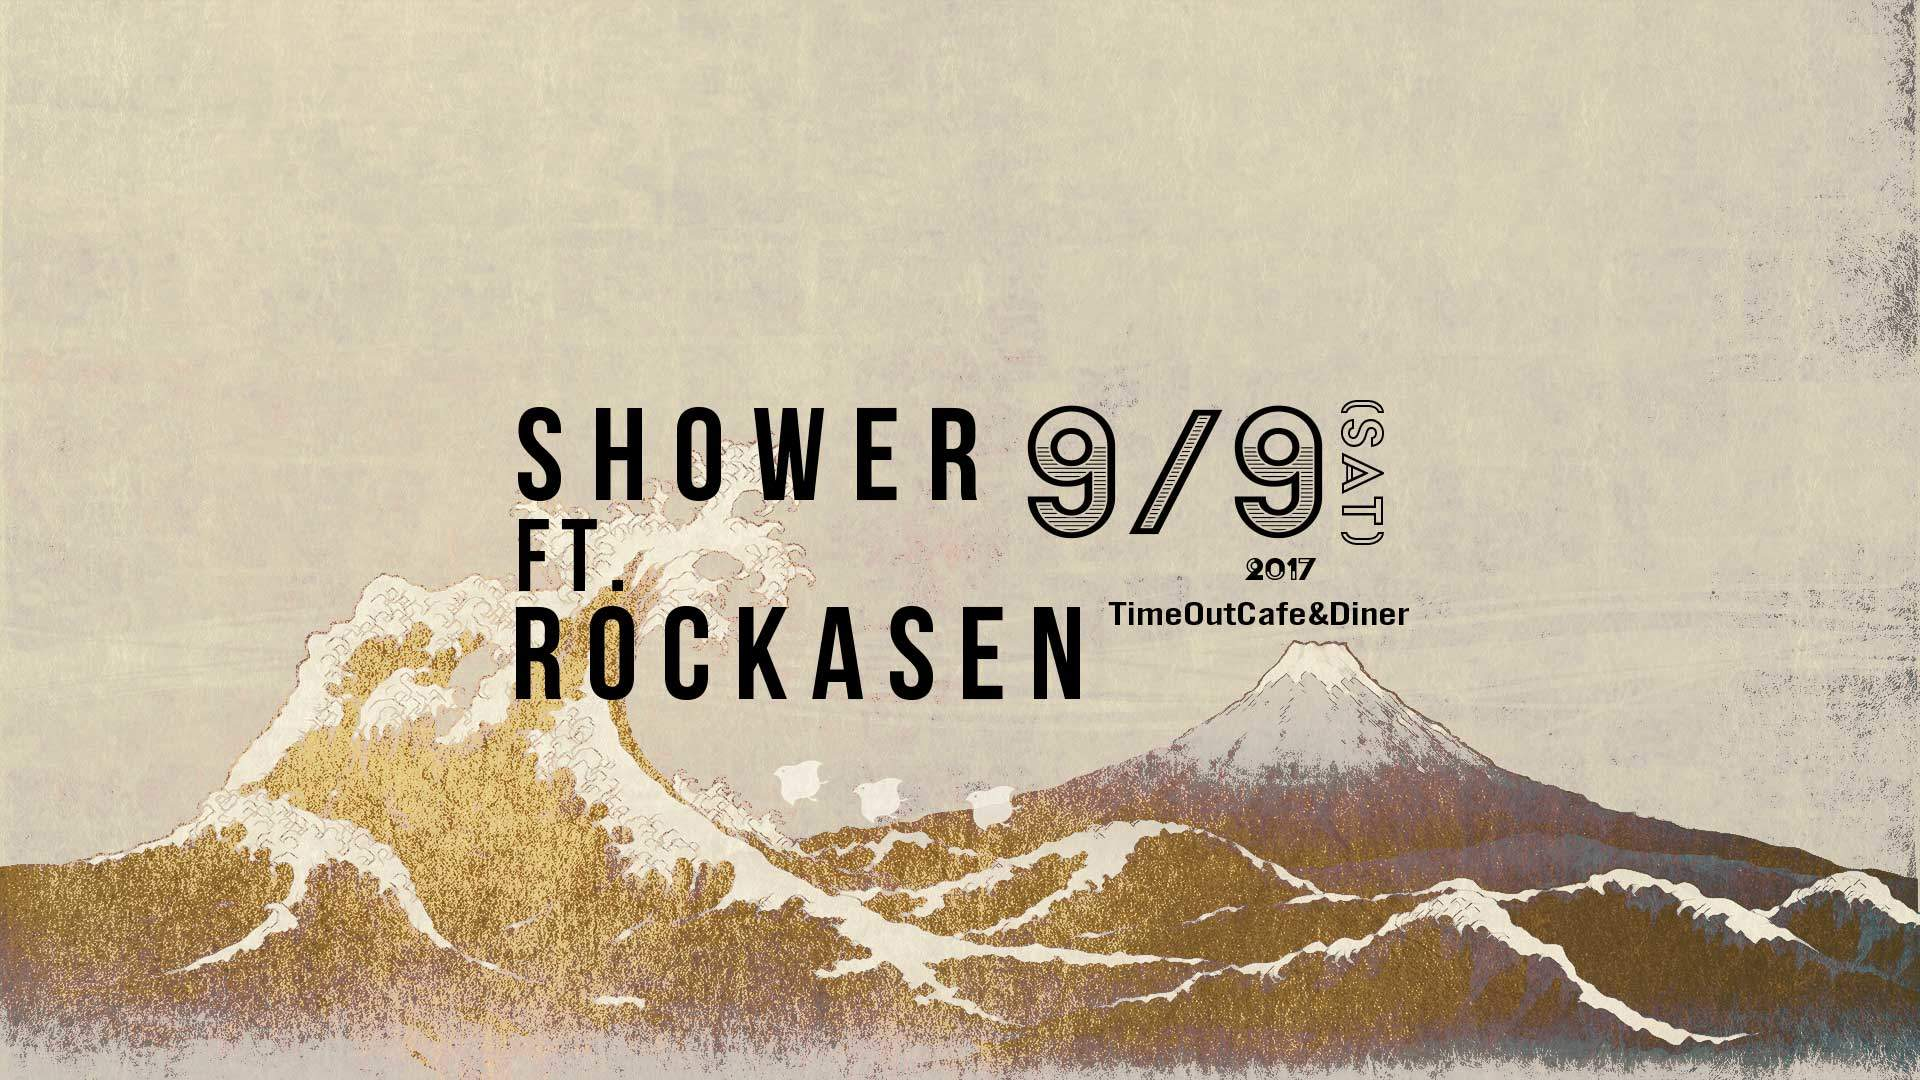 SHOWER ft. ROCKASEN